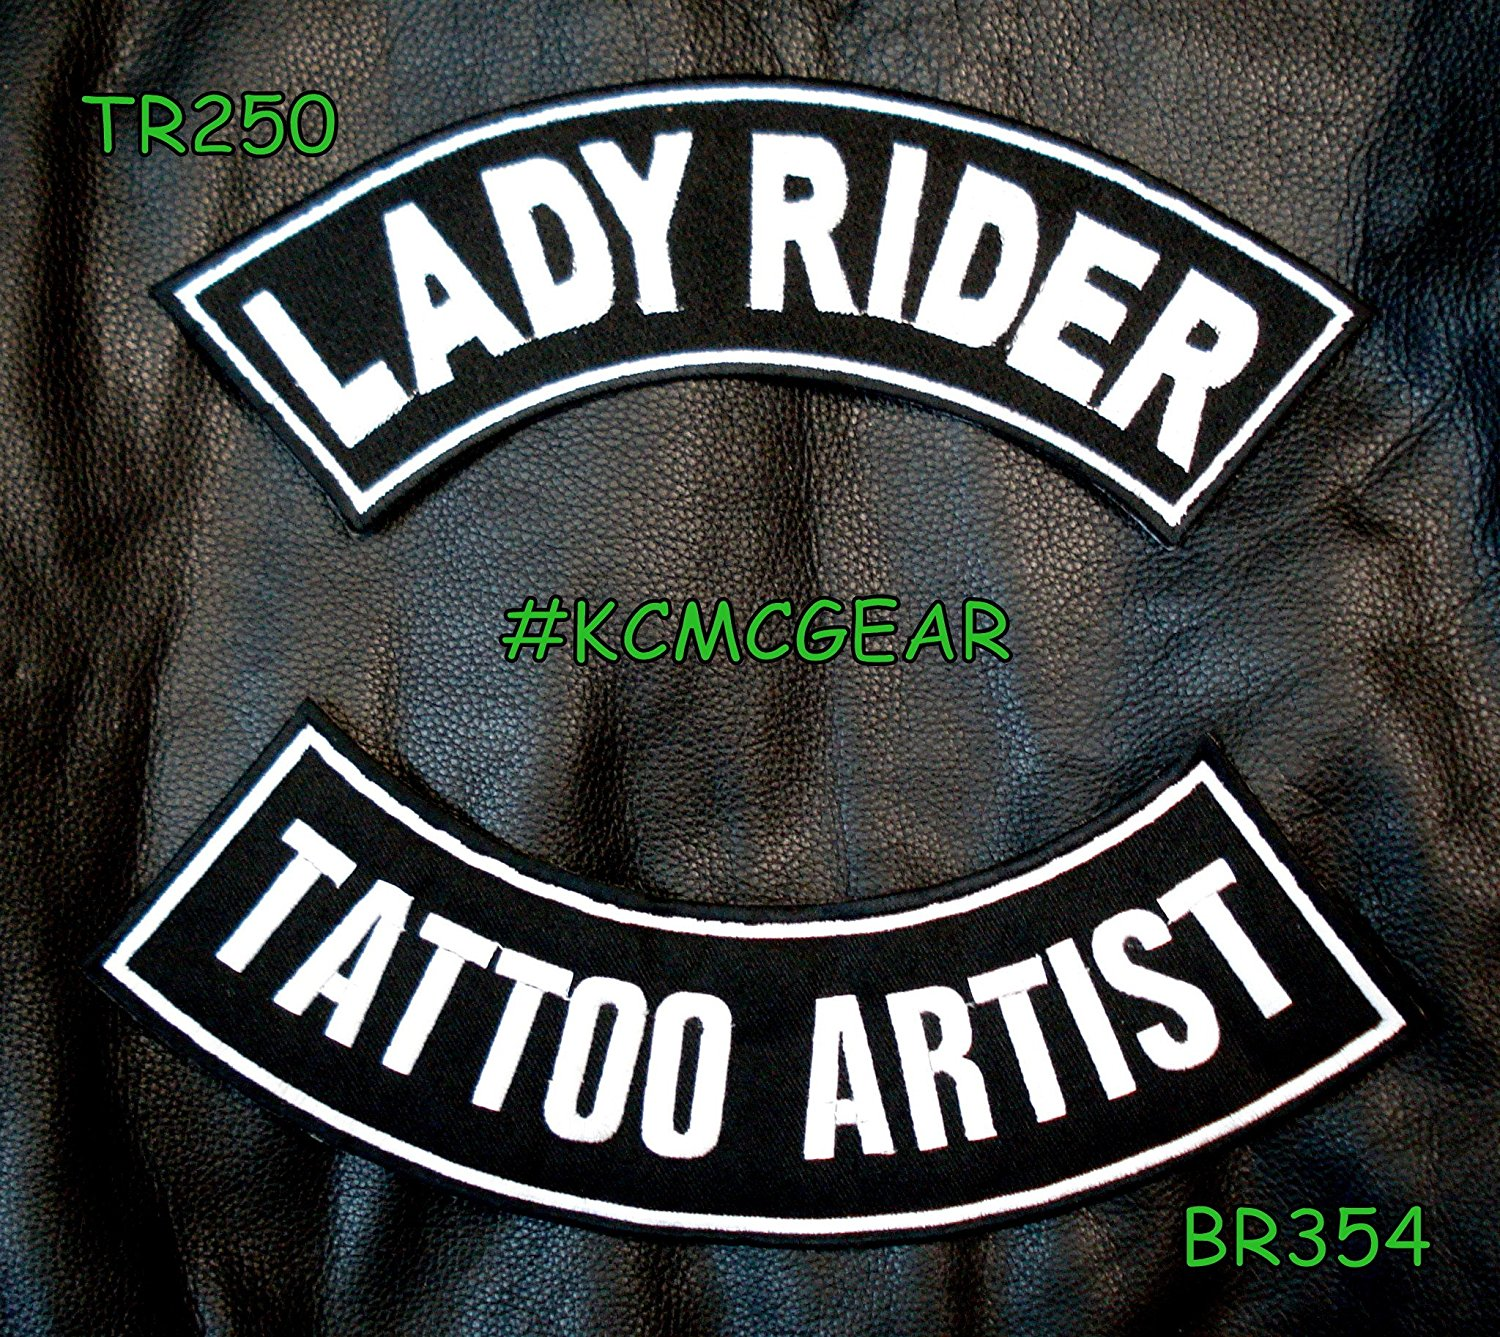 Lady Rider Tattoo Artist Embroidered Patches Motorcycle Biker Patch Set for Jackets